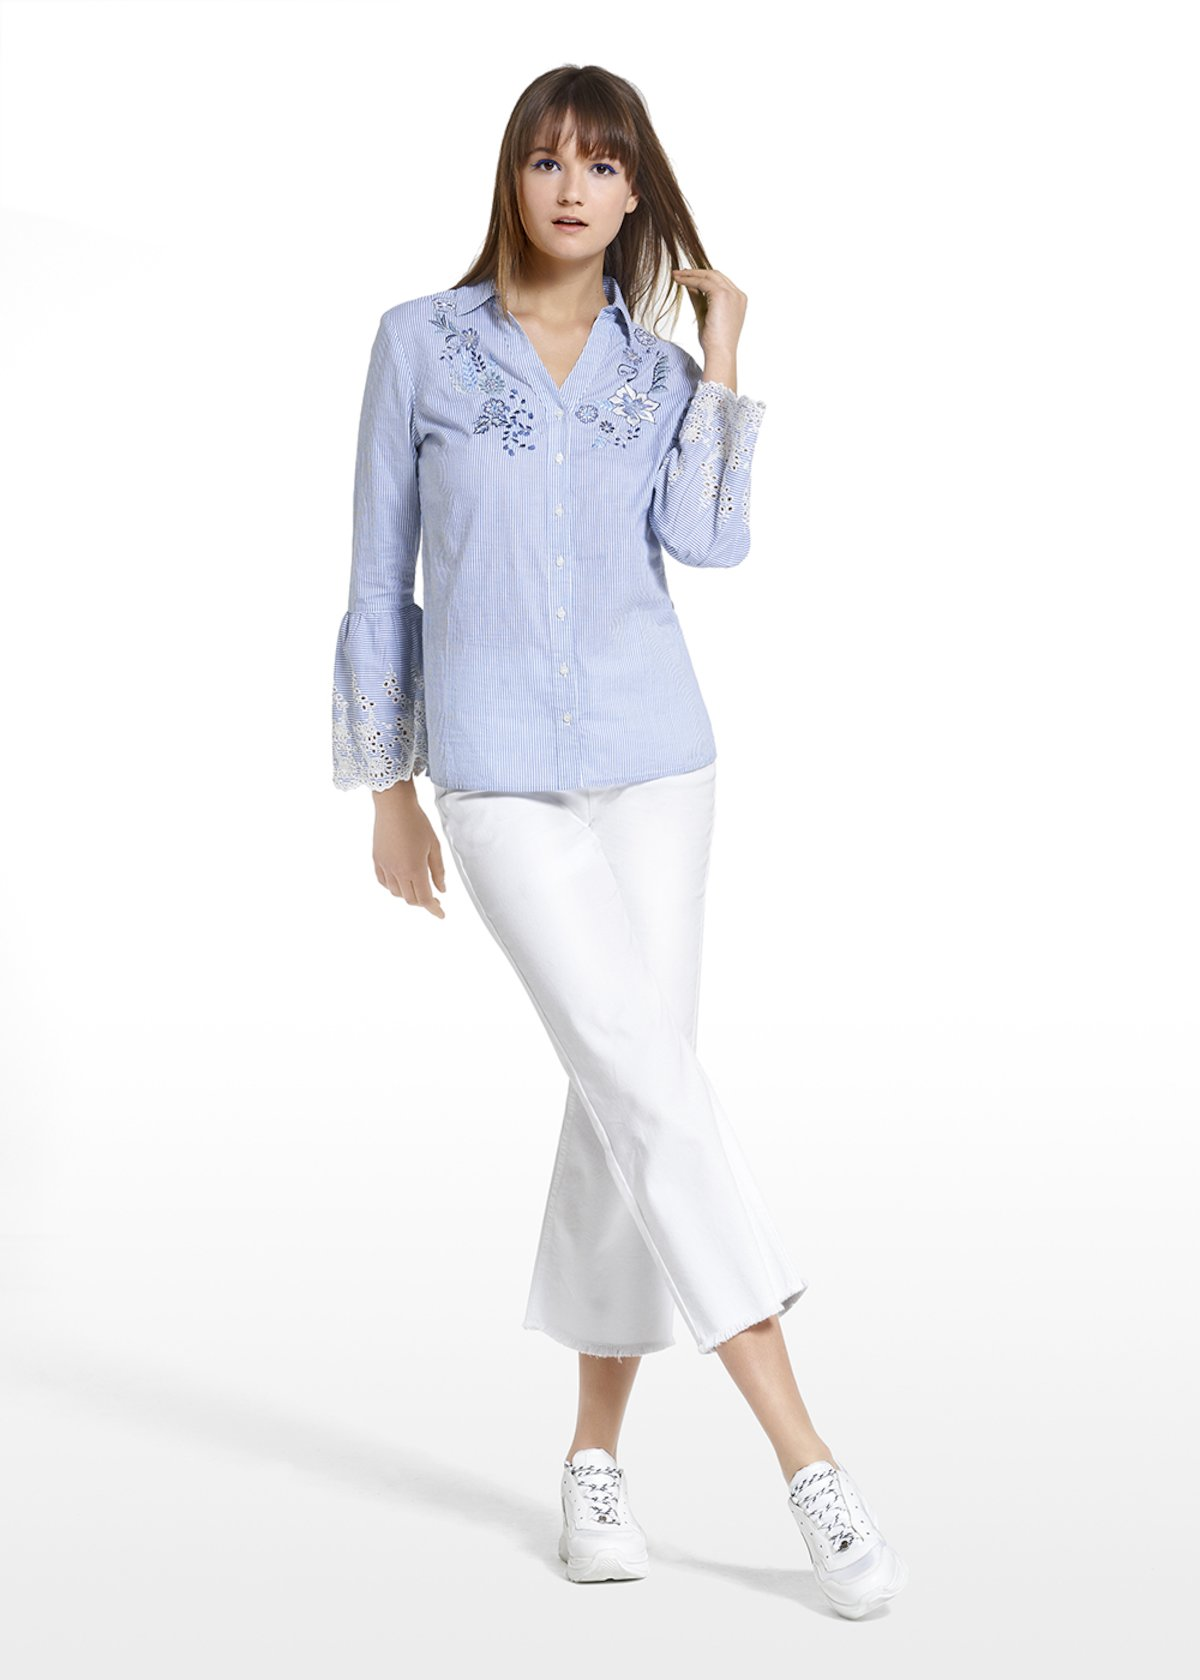 Colby blouse with flower embroidery at the neckline - Blue / White Stripes - Woman